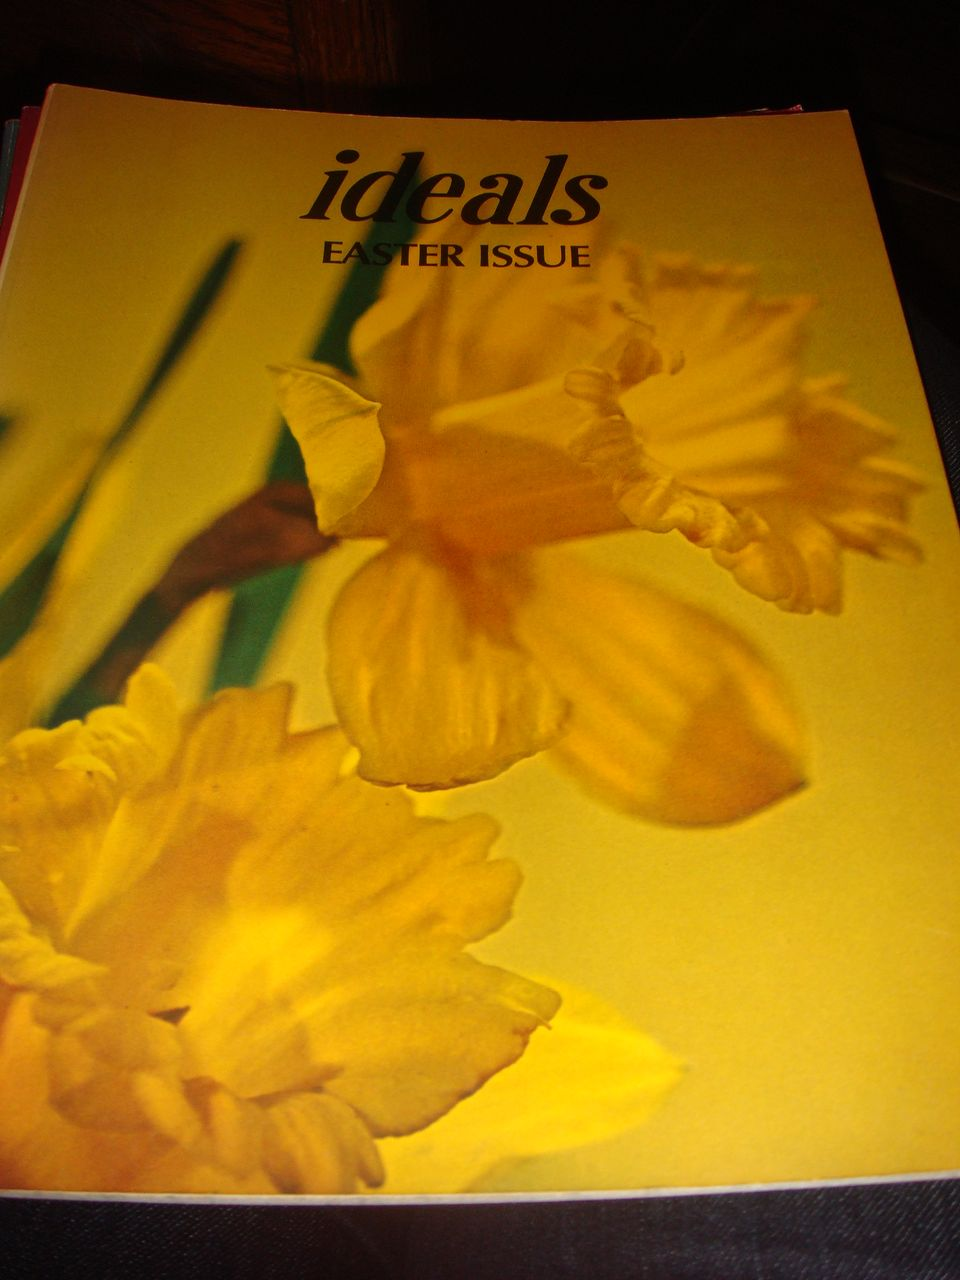 1975 IDEALS Easter Issue Volume 32 Magazine